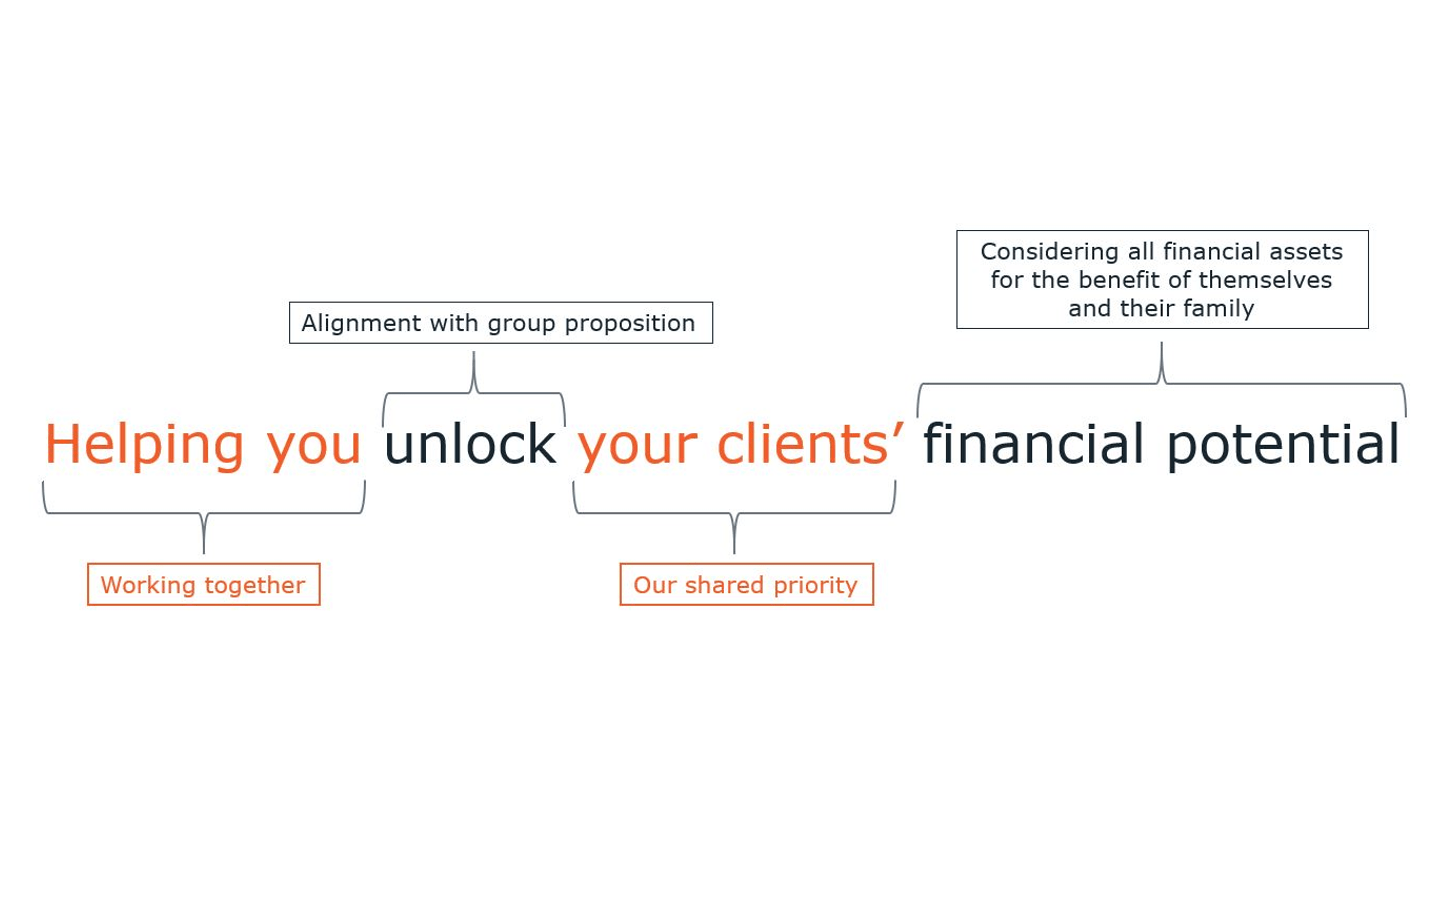 Key Partnerships proposition - helping you unlock your clients financial potential in their home